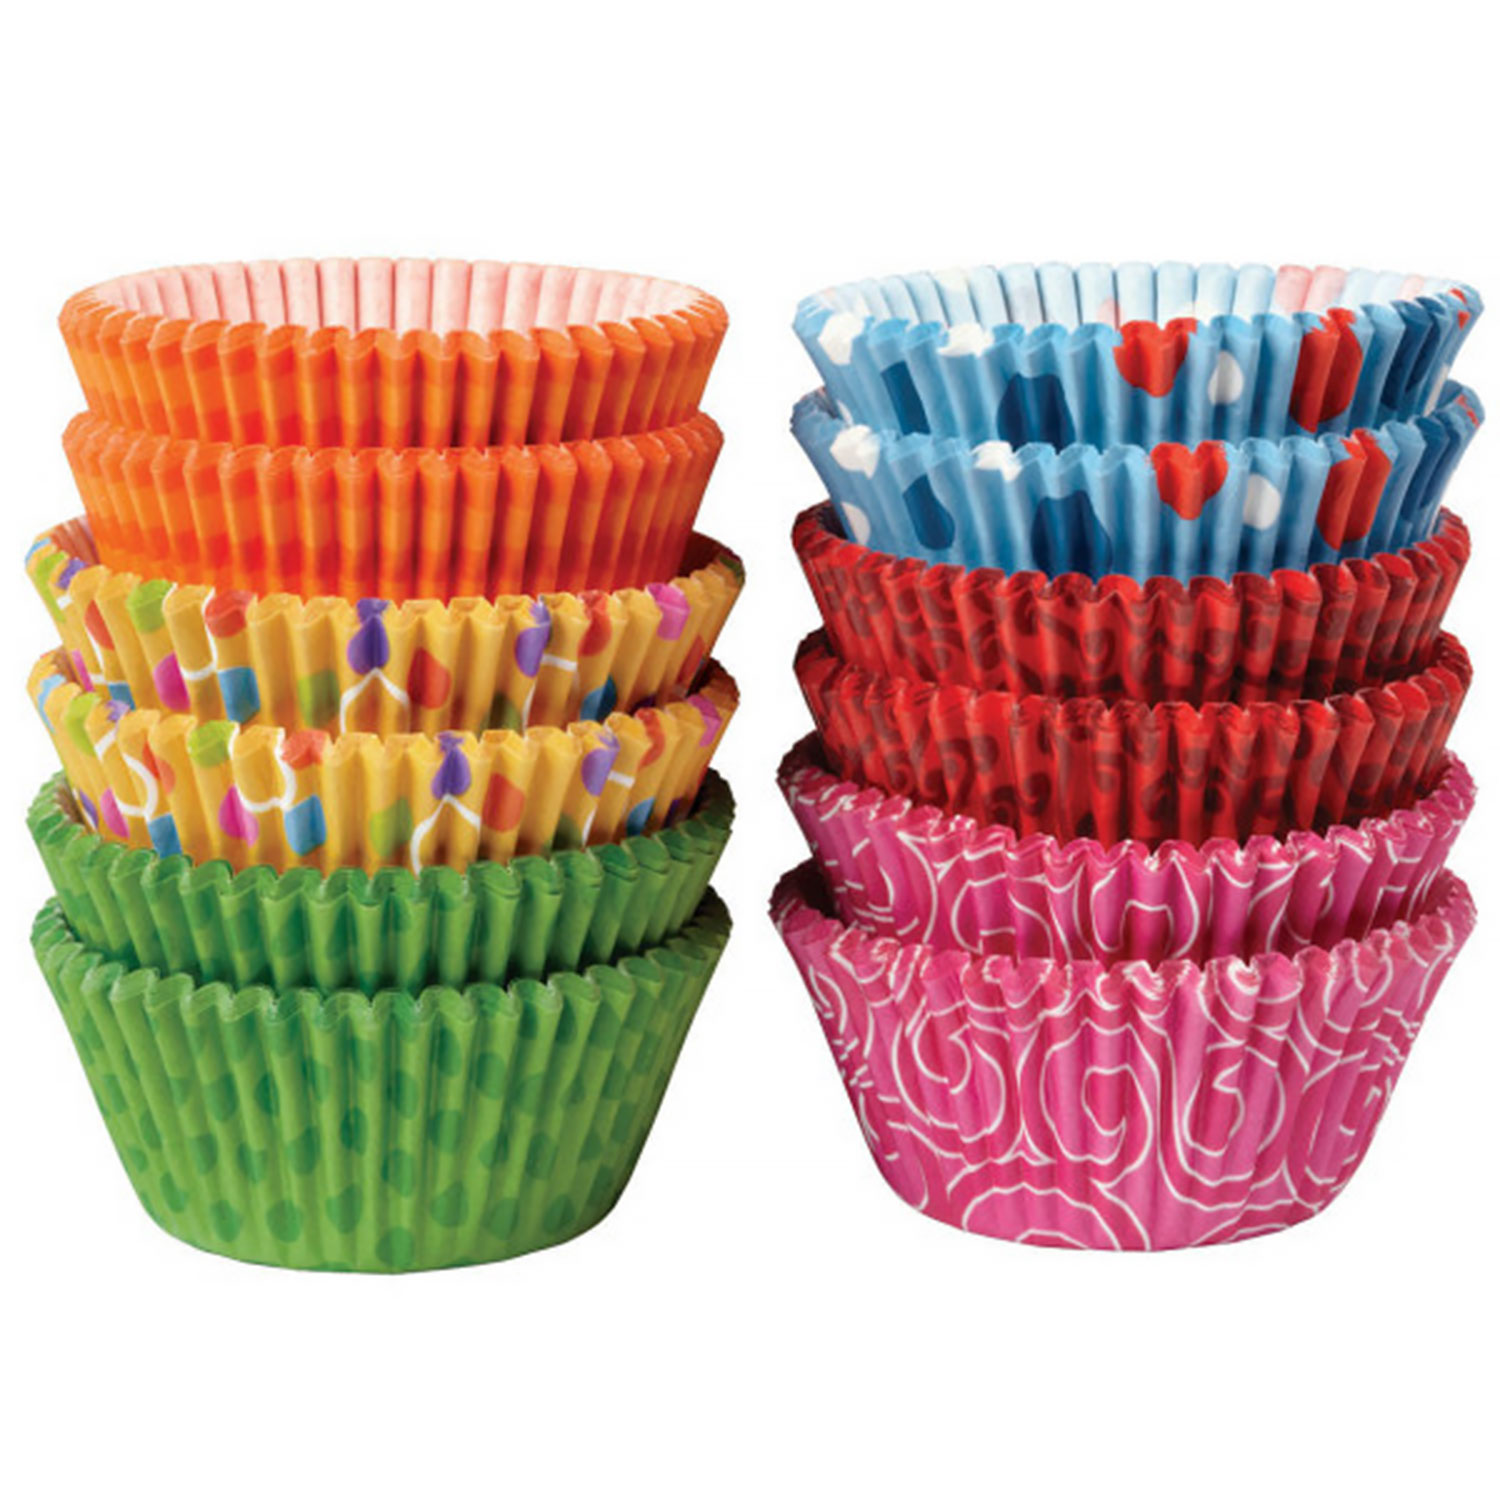 Seasons Standard Baking Cups